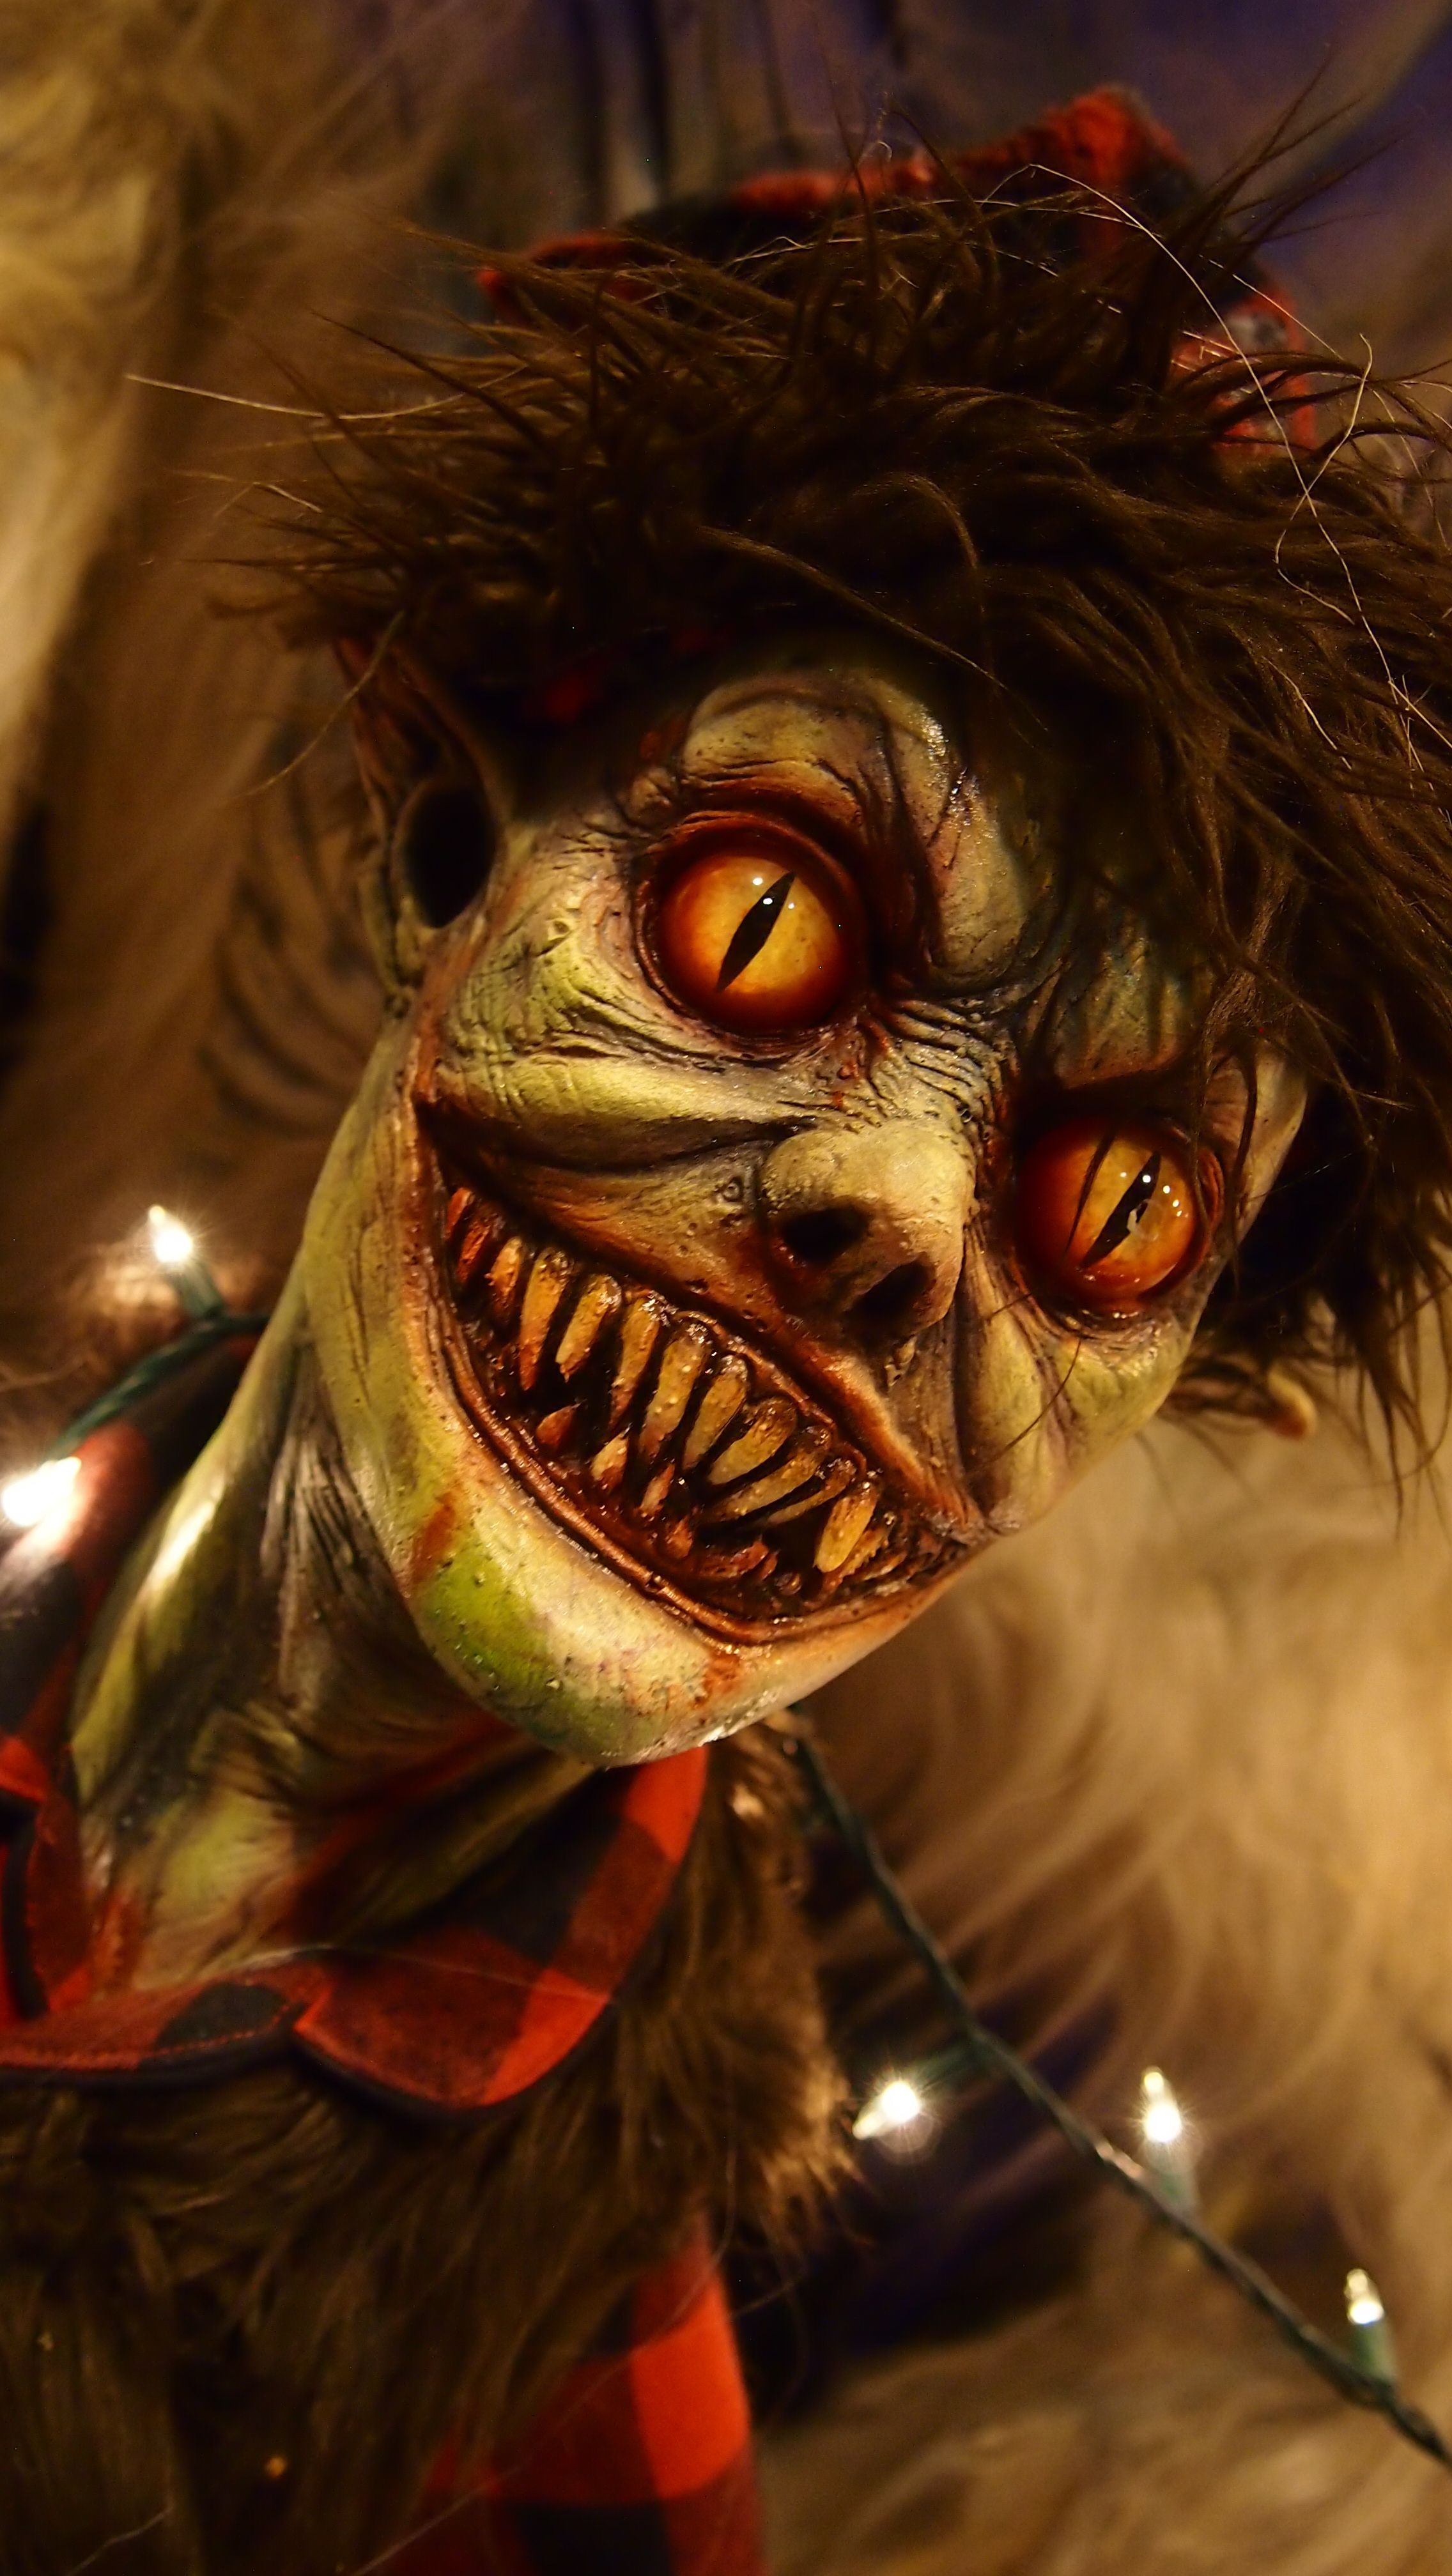 horror movie creatures   Scary Monster Art (51 pics) - Picture #42 ...